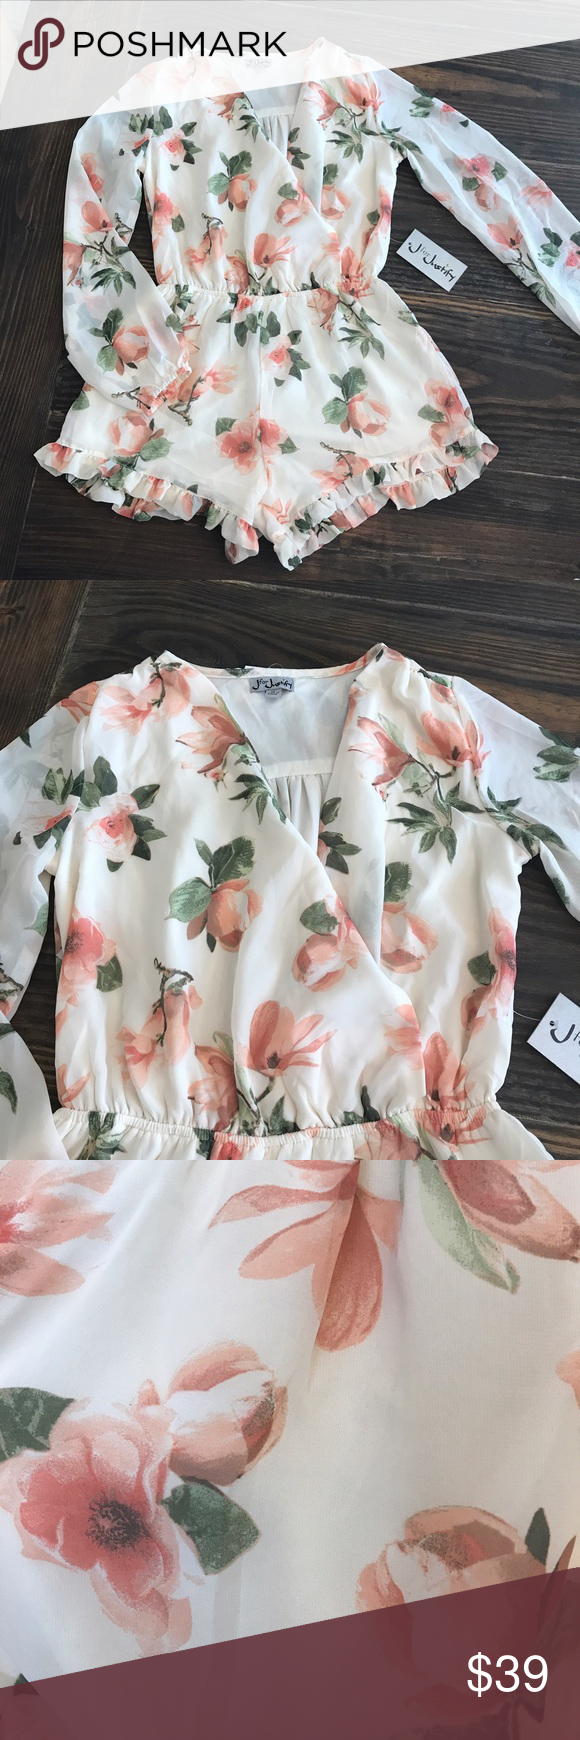 bd95e775f09d 🌺NWT Beautiful Floral Romper by J FOR JUSTIFY 🌺 FAST SELLER! Brand ...